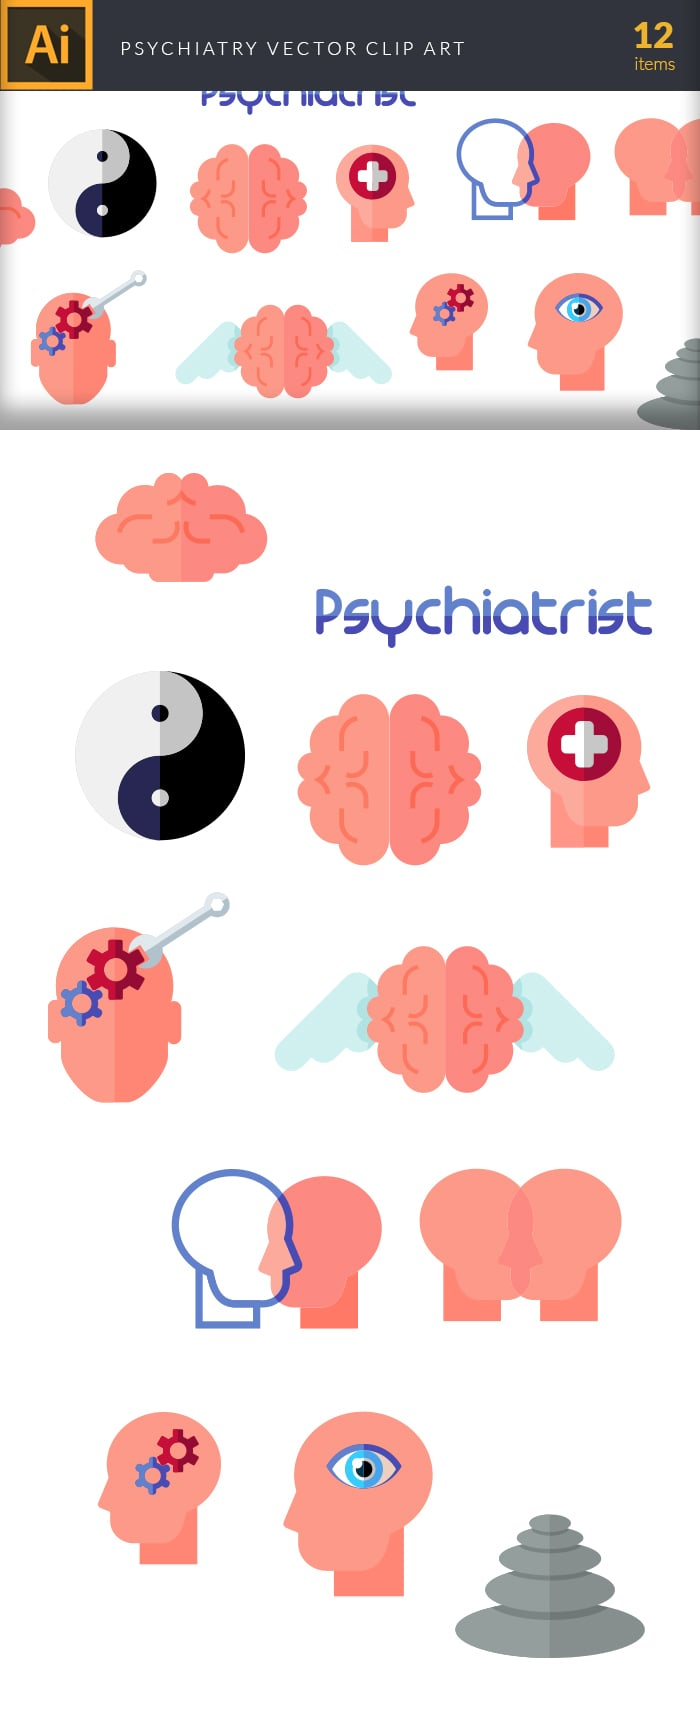 The Best Mega Graphics Bundle. 1000+ Premium Items for $49 - psychiatry large